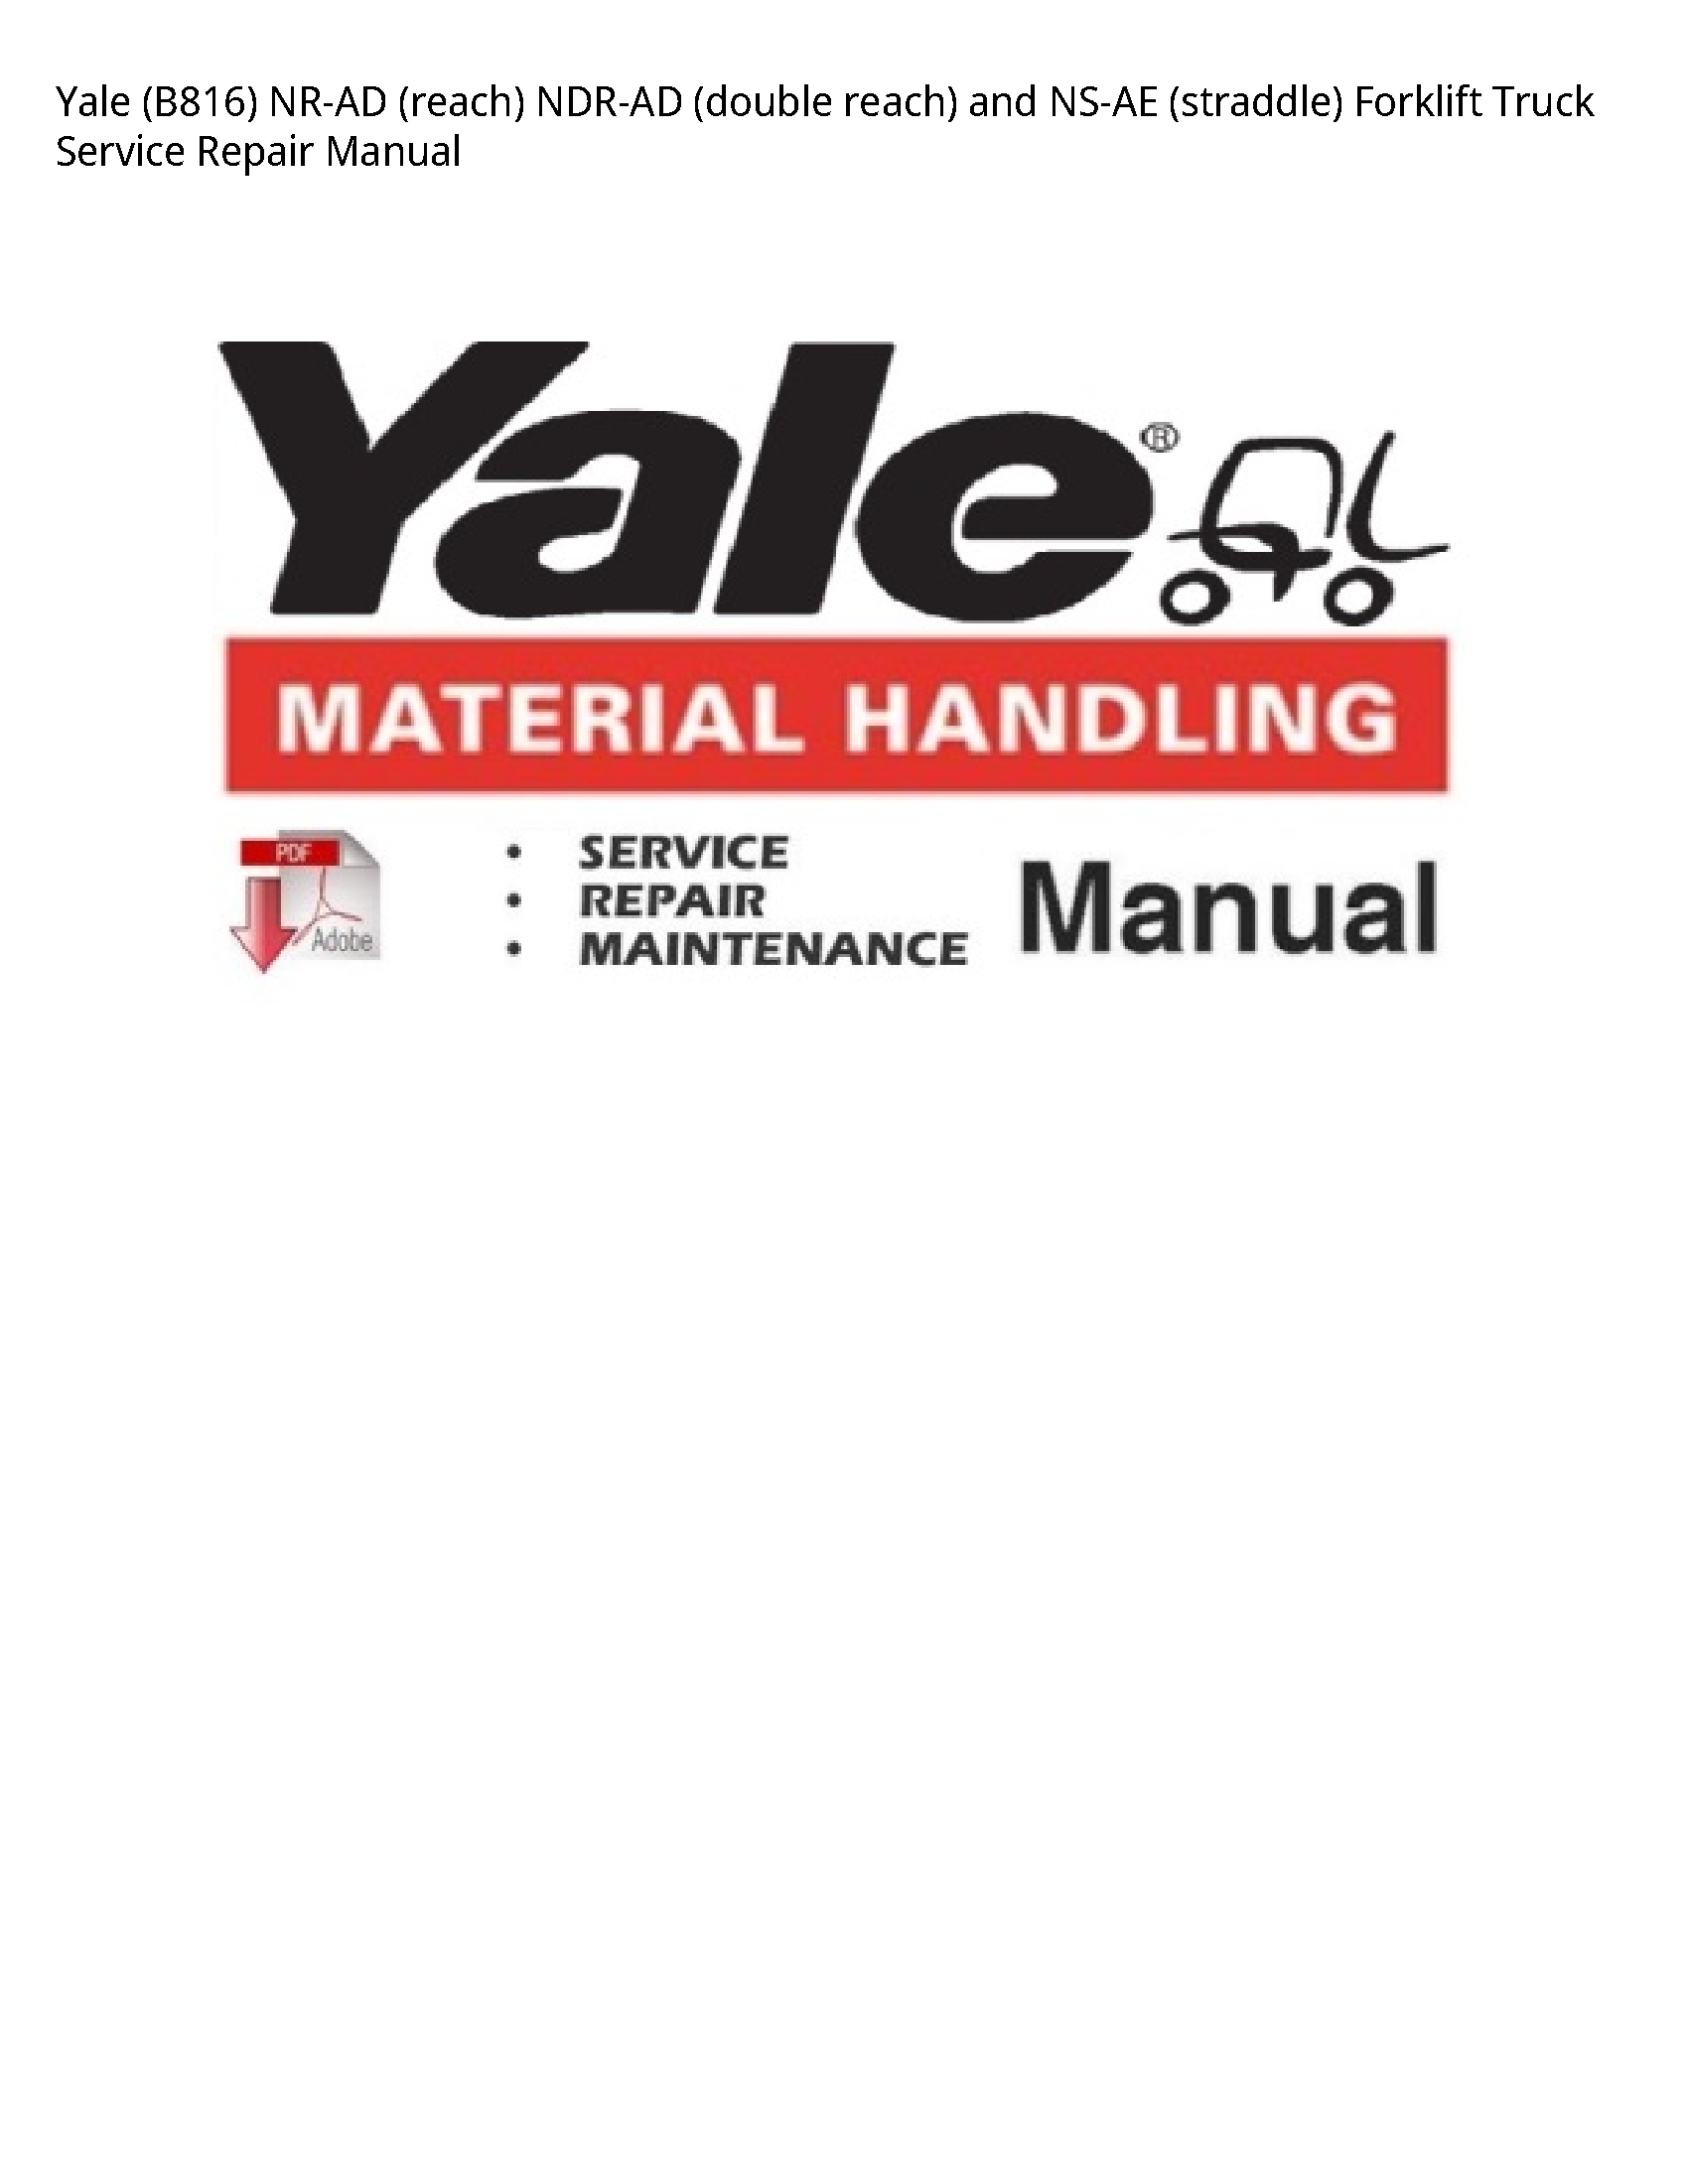 Yale (B816) NR-AD (reach) NDR-AD (double reach)  NS-AE (straddle) Forklift Truck manual